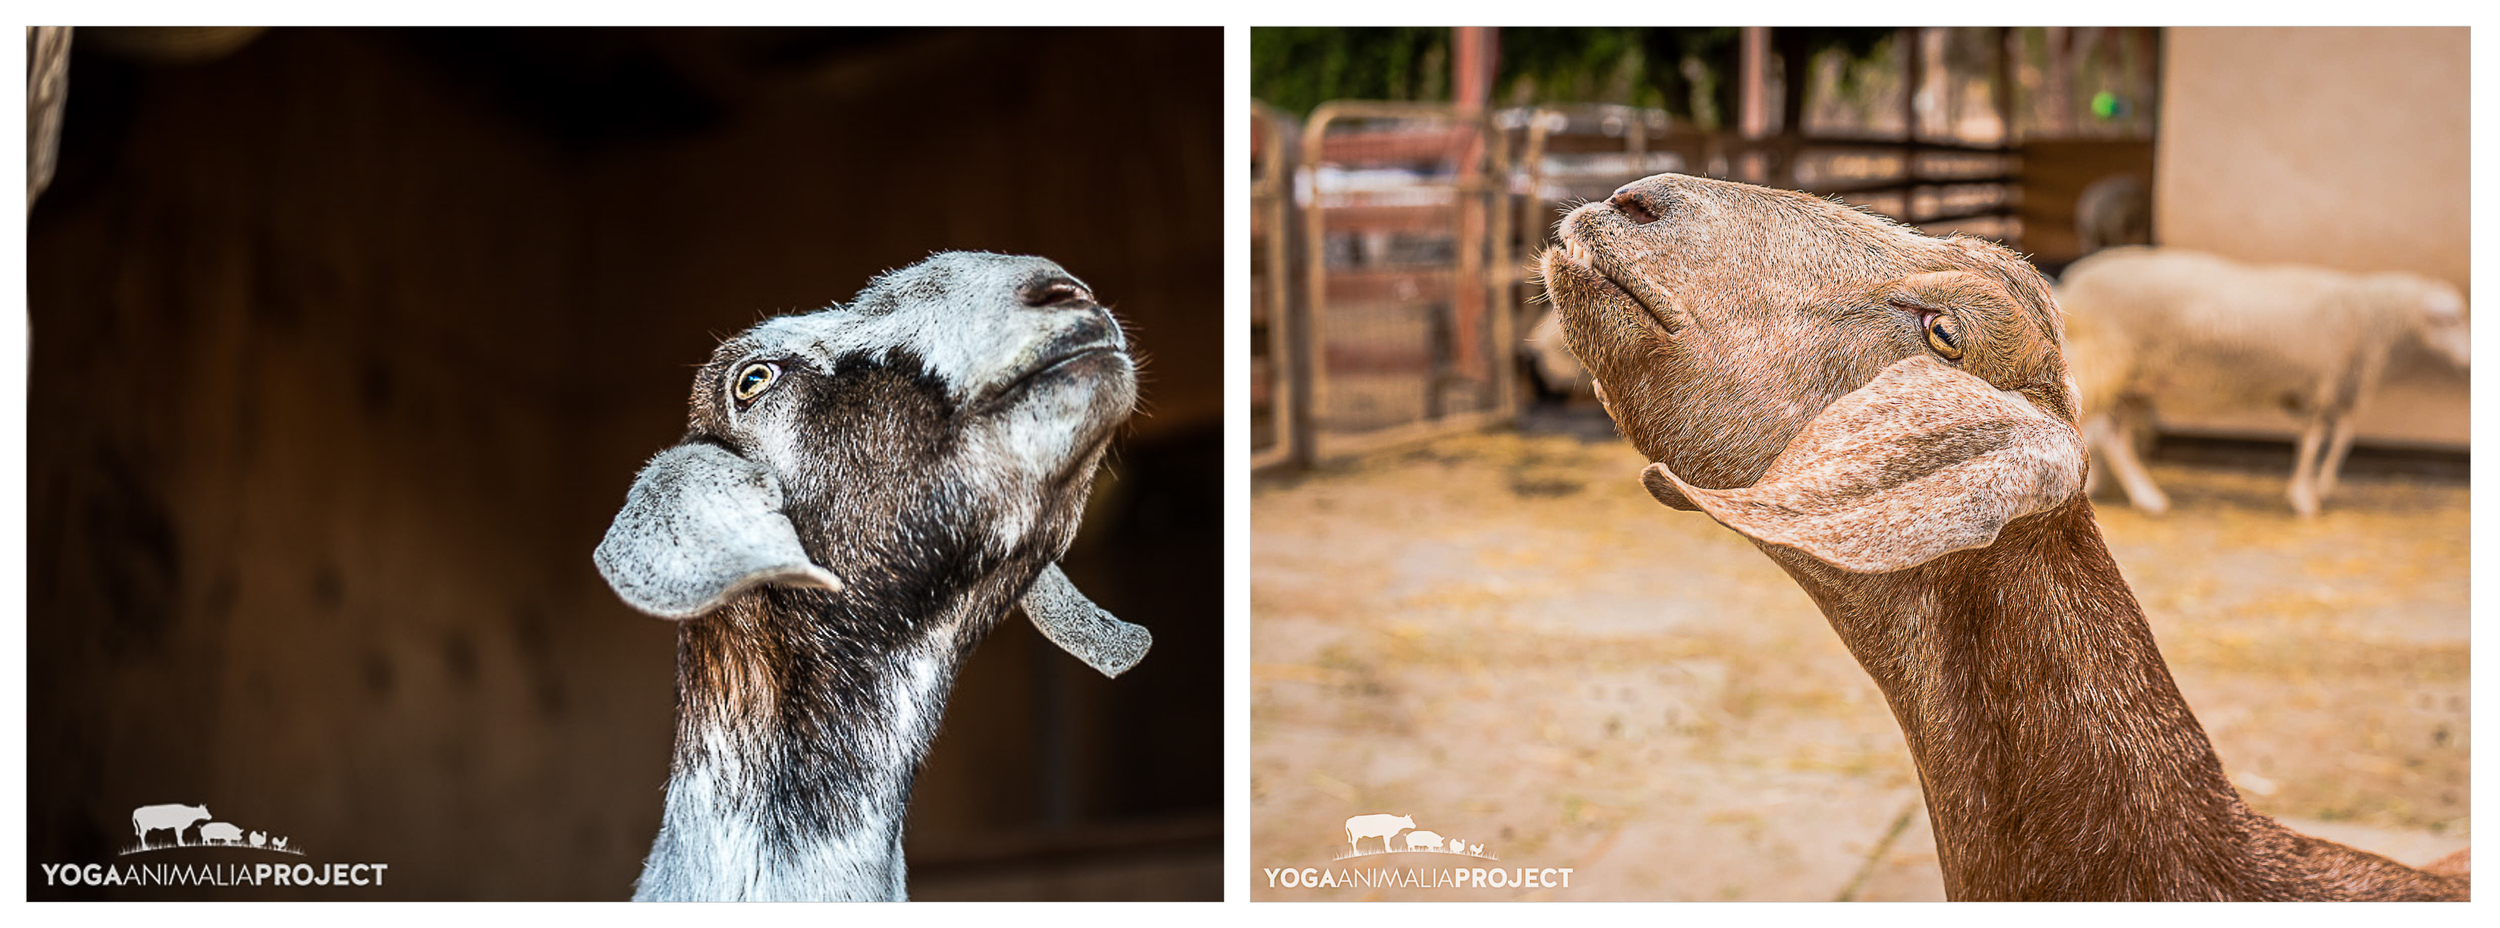 Molly & Maria -two peas from very different pods, Farm Sanctuary's Animal Acres, Acton, California